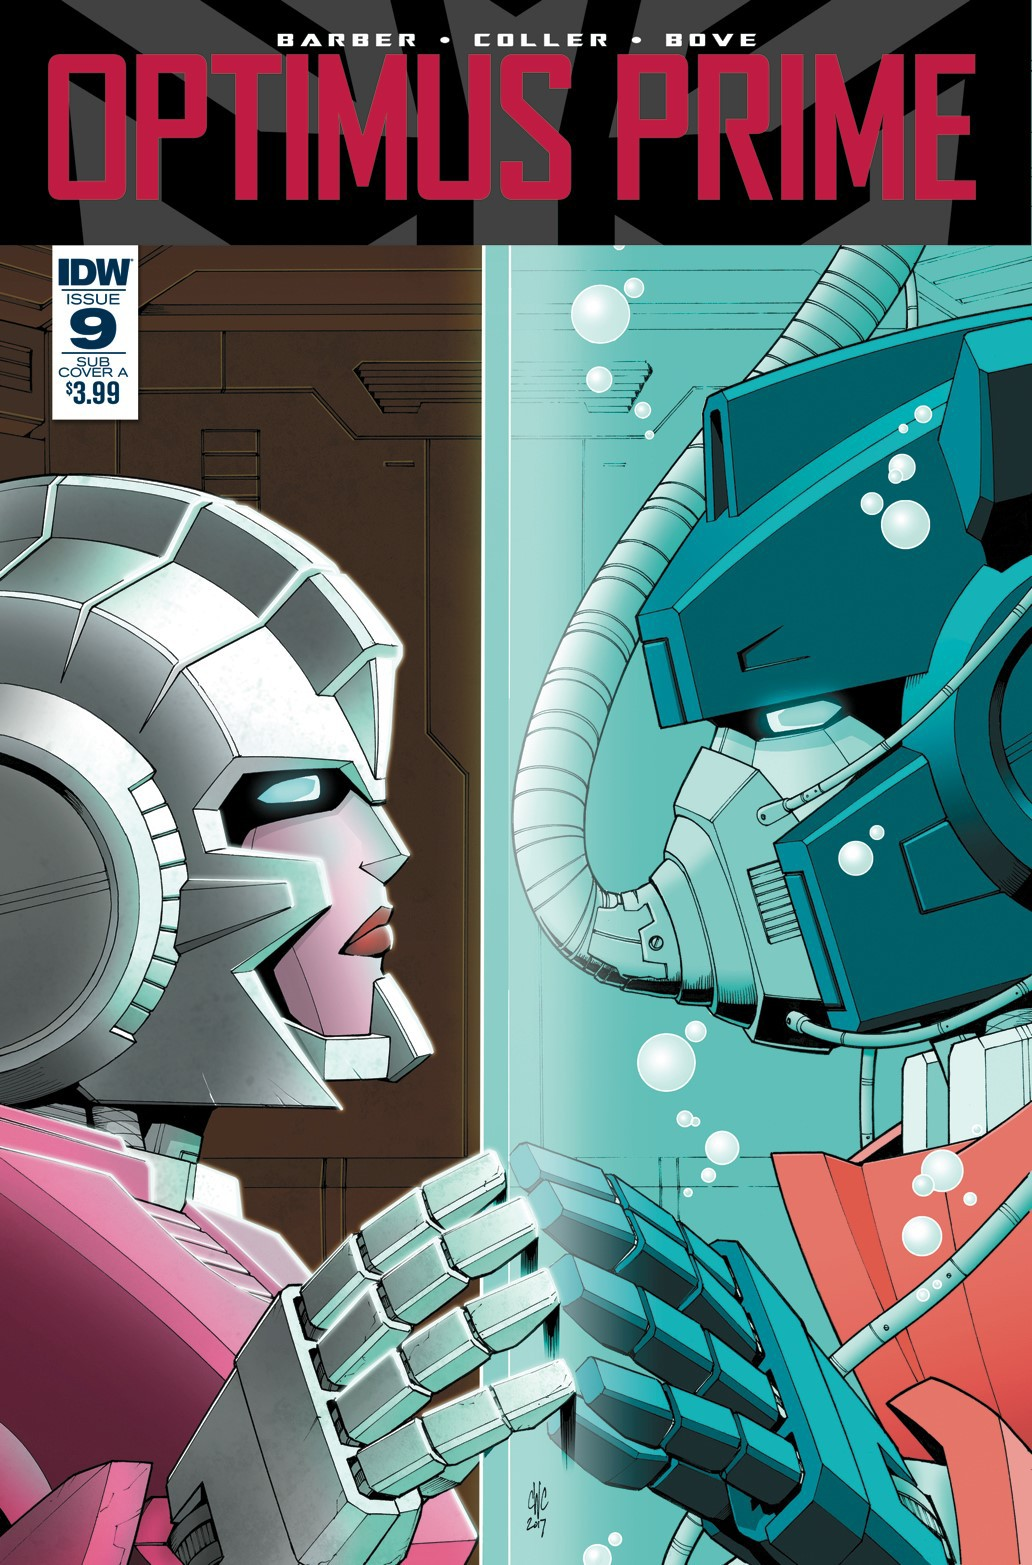 Transformers News: Variant Covers for IDW Optimus Prime #9